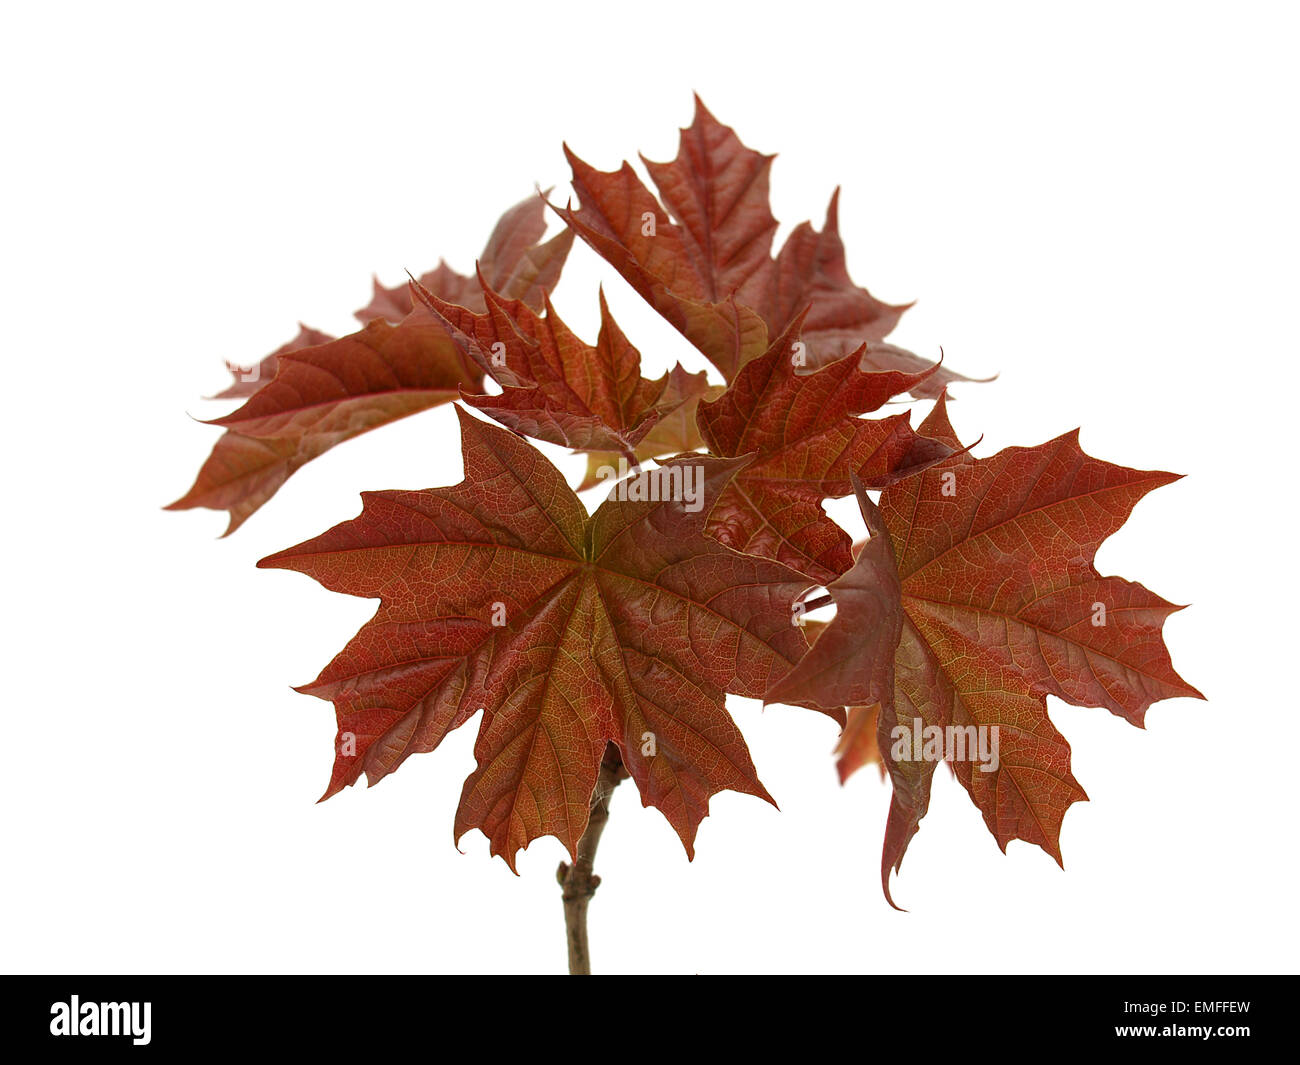 Maple leaves on the white background - Stock Image